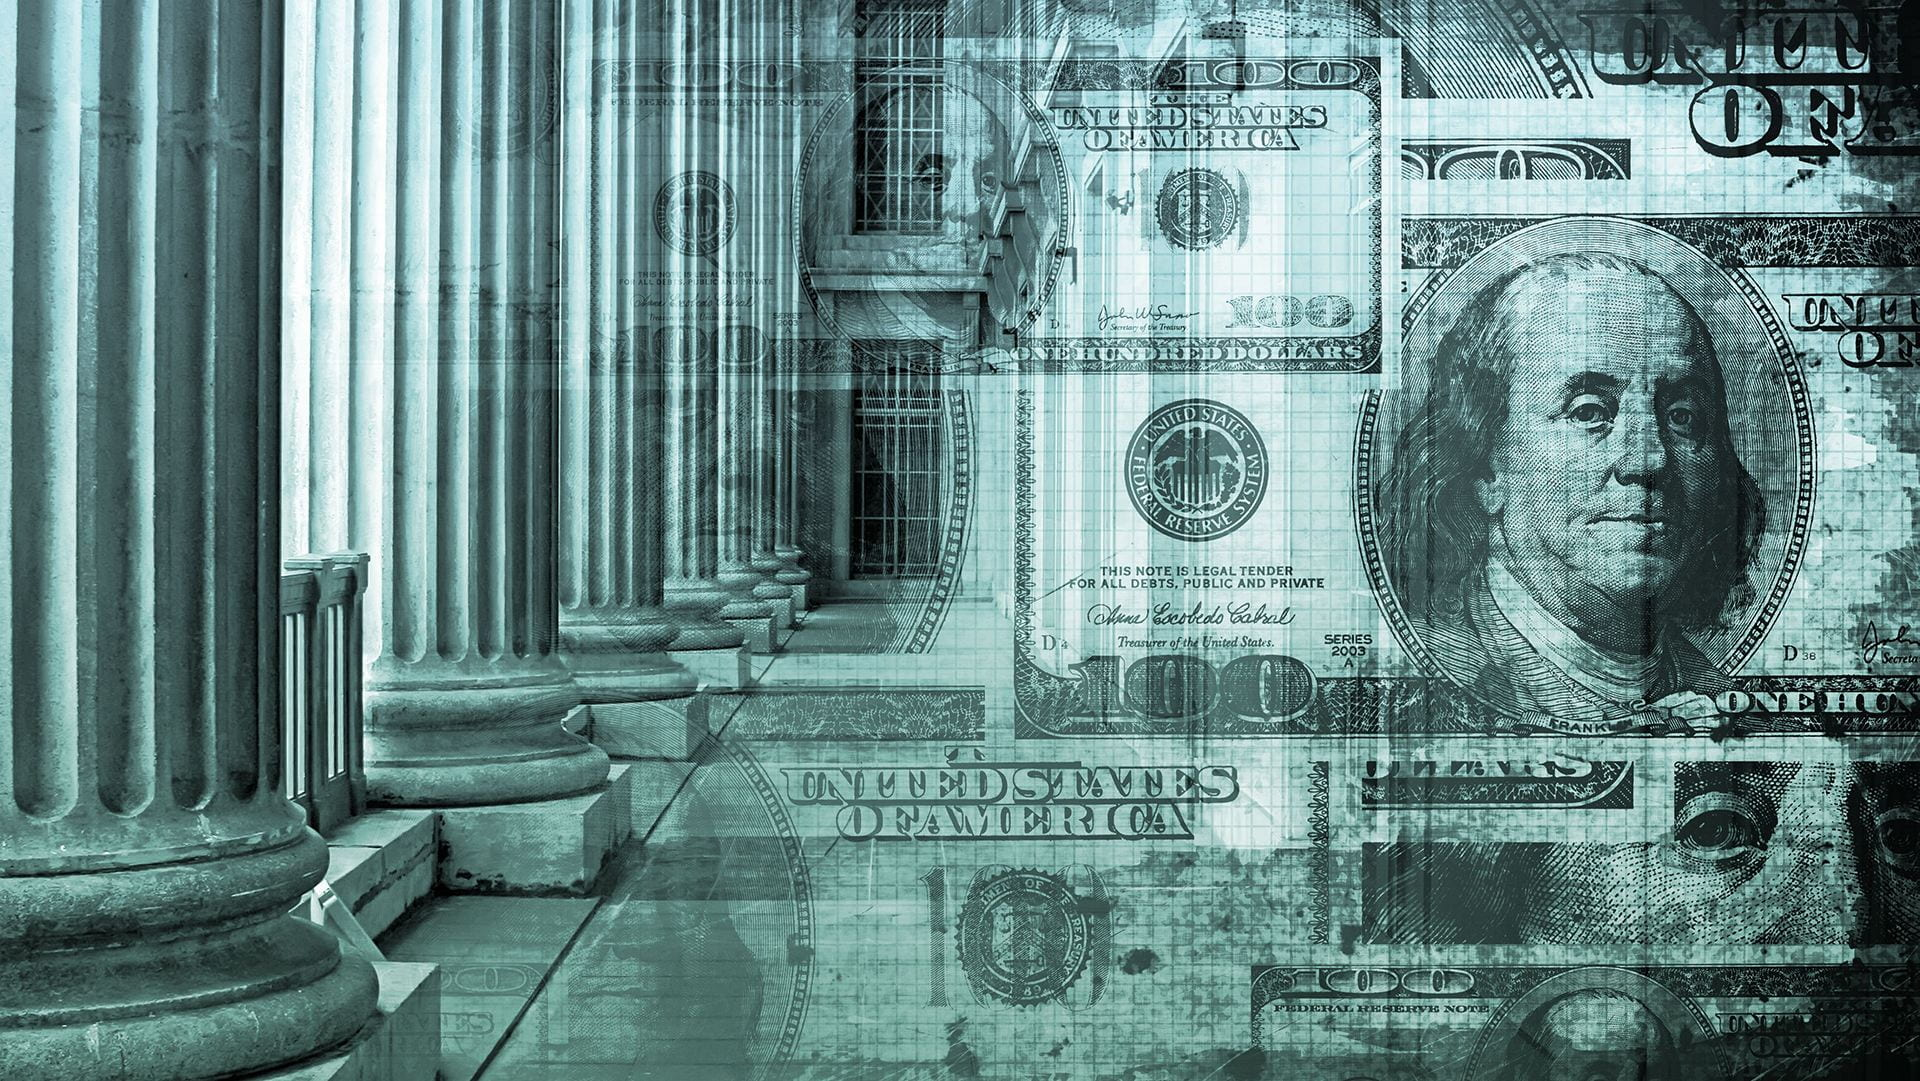 abstract image of 100 dollar bills imposed over columns